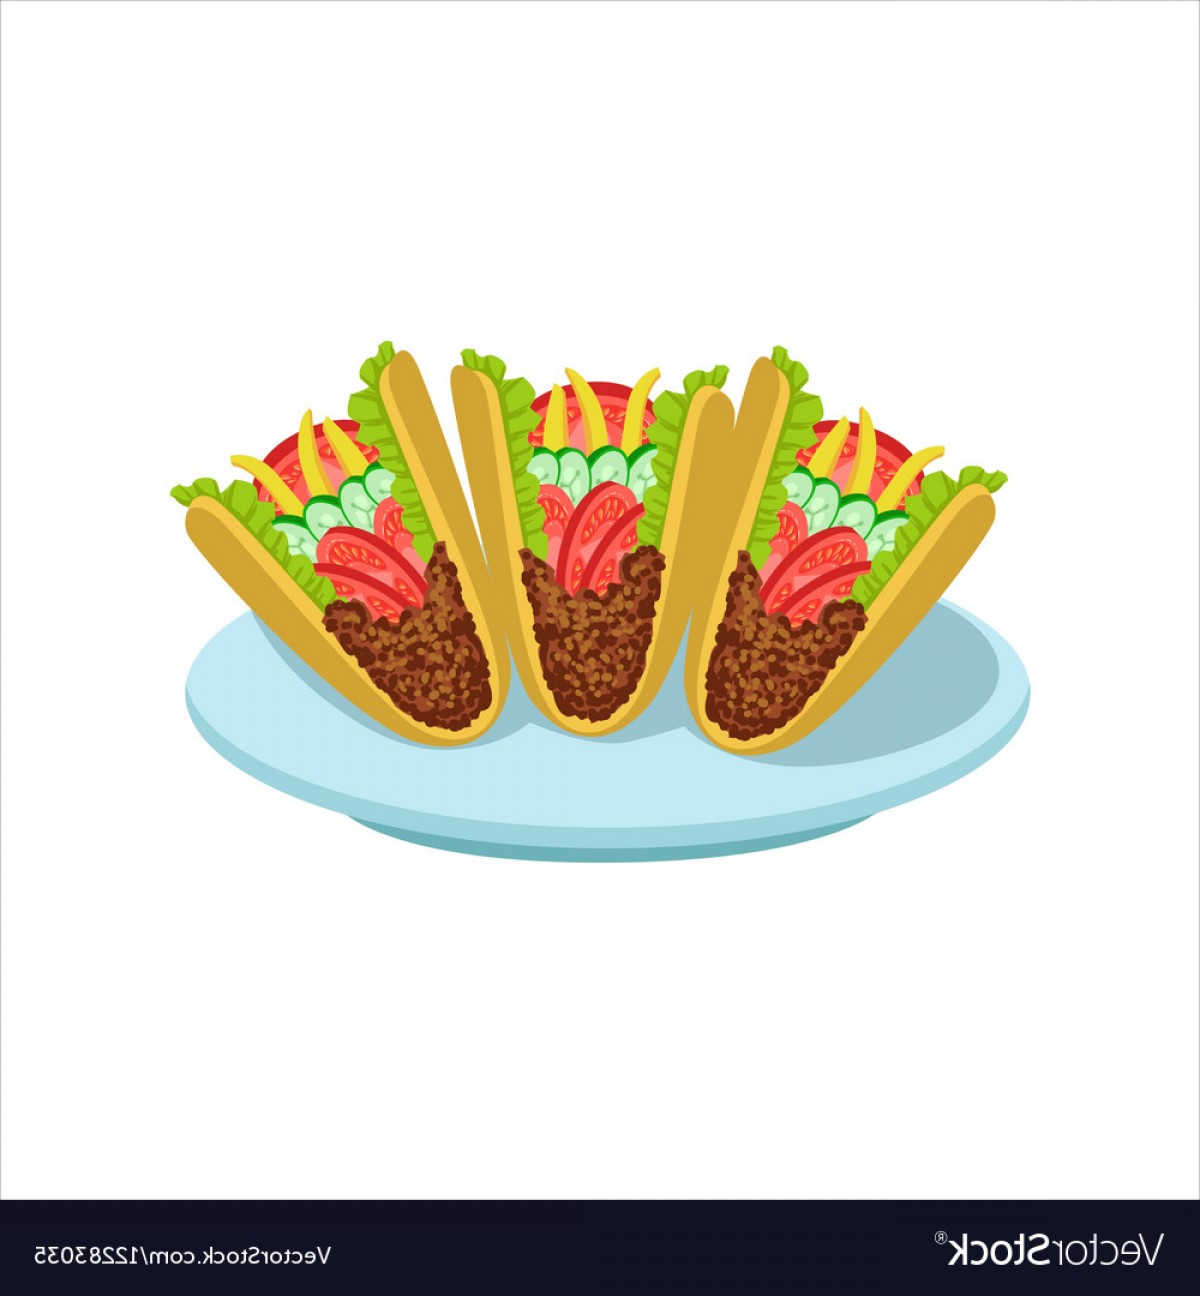 Steak Taco Vector Art: Crispy Taco Traditional Mexican Cuisine Dish Food Vector